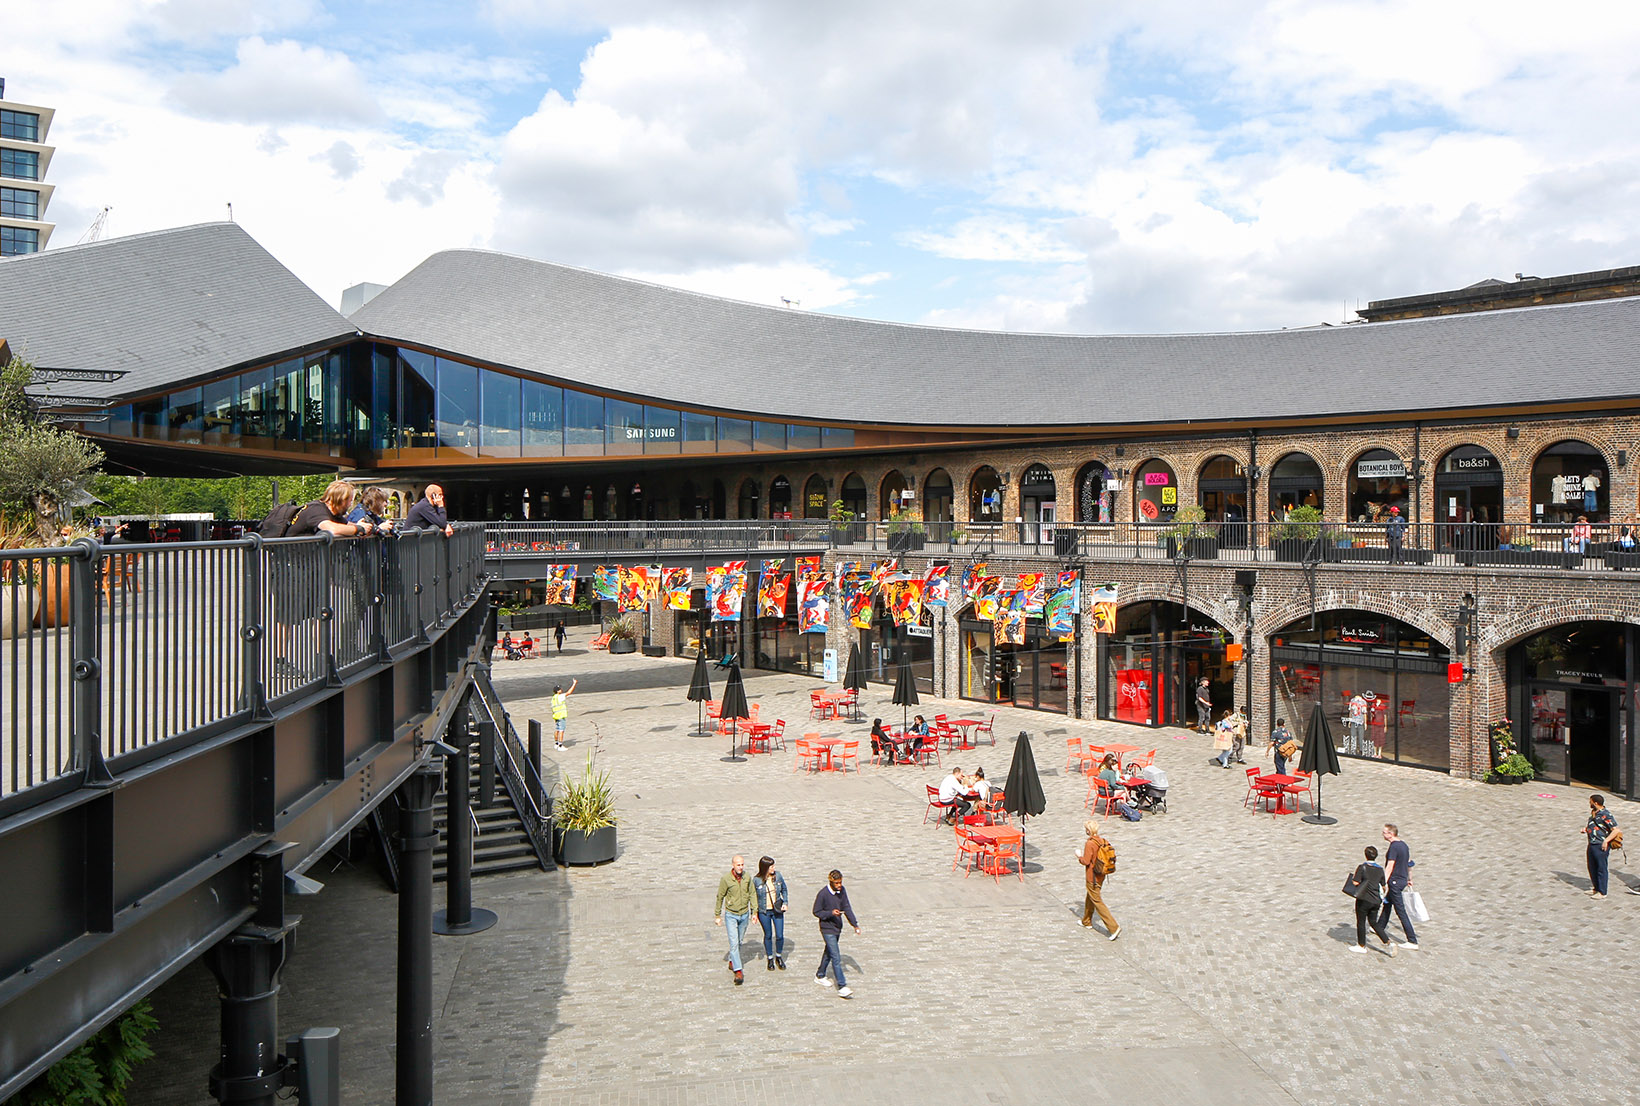 Zoomed out shot of Coal Drops Yard, with the multicoloured raised flags visible in the distance